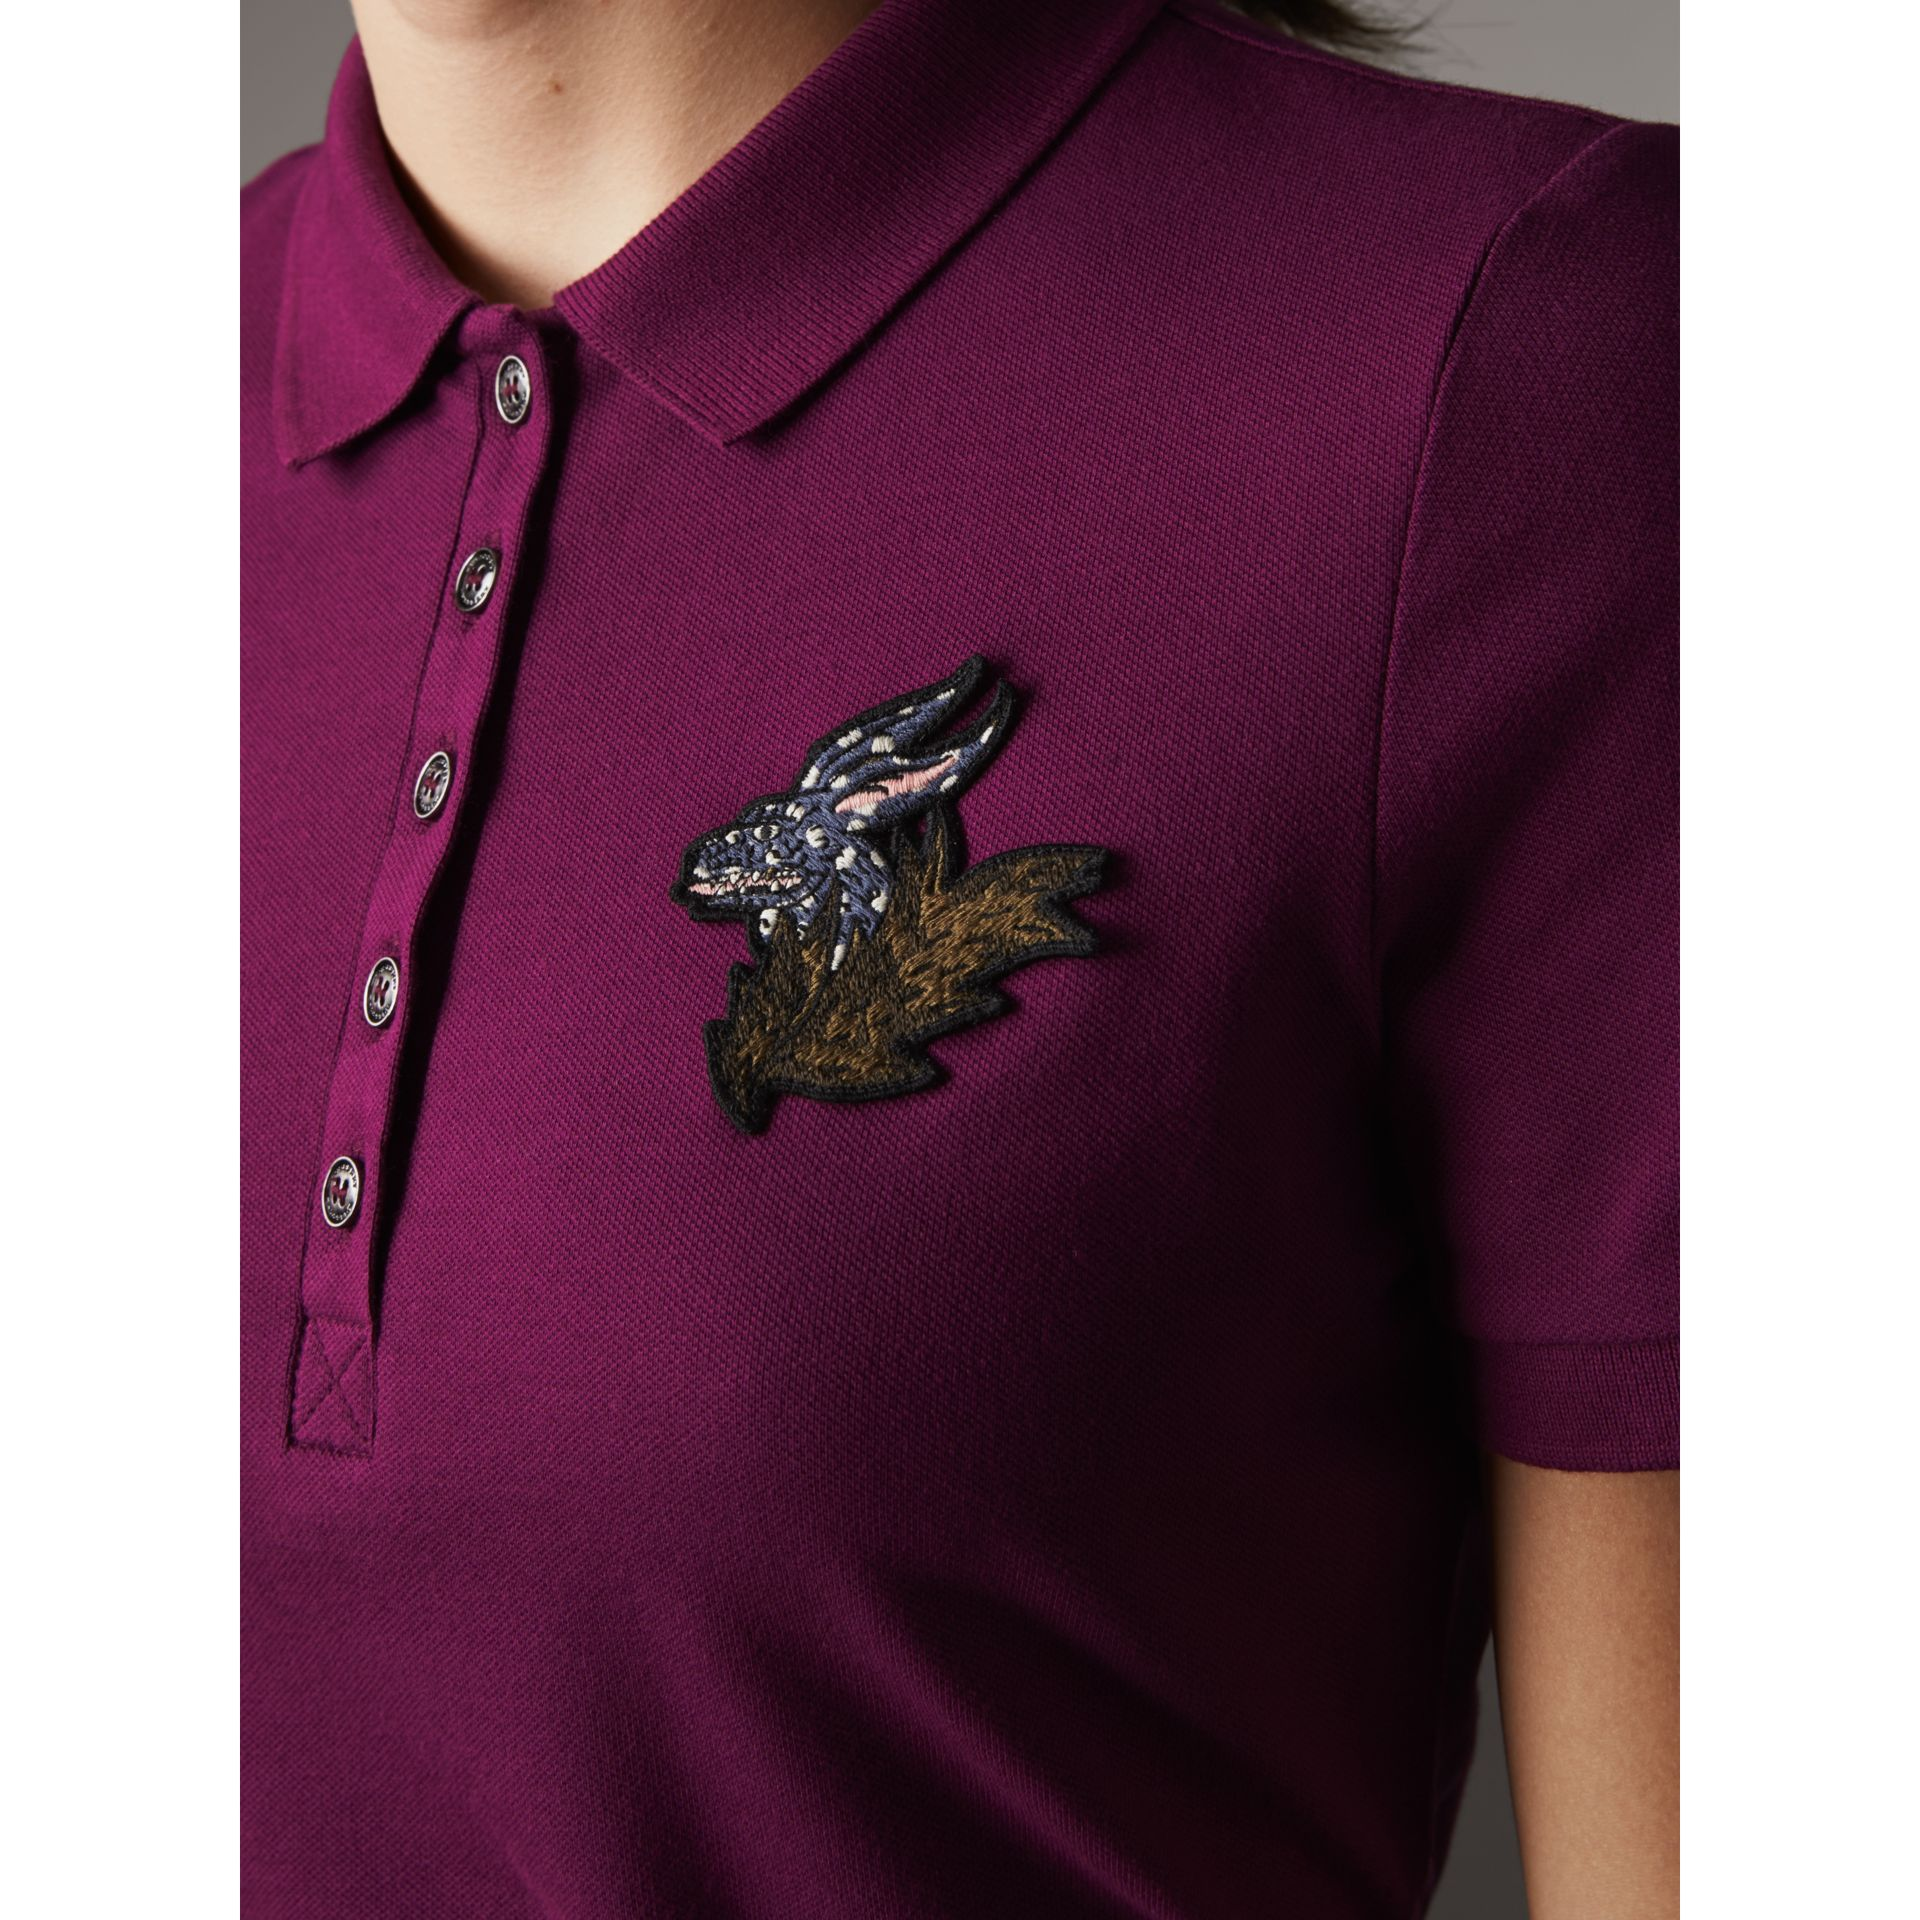 Beasts Motif Stretch Cotton Piqué Polo Shirt in Magenta Pink - Women | Burberry Singapore - gallery image 2